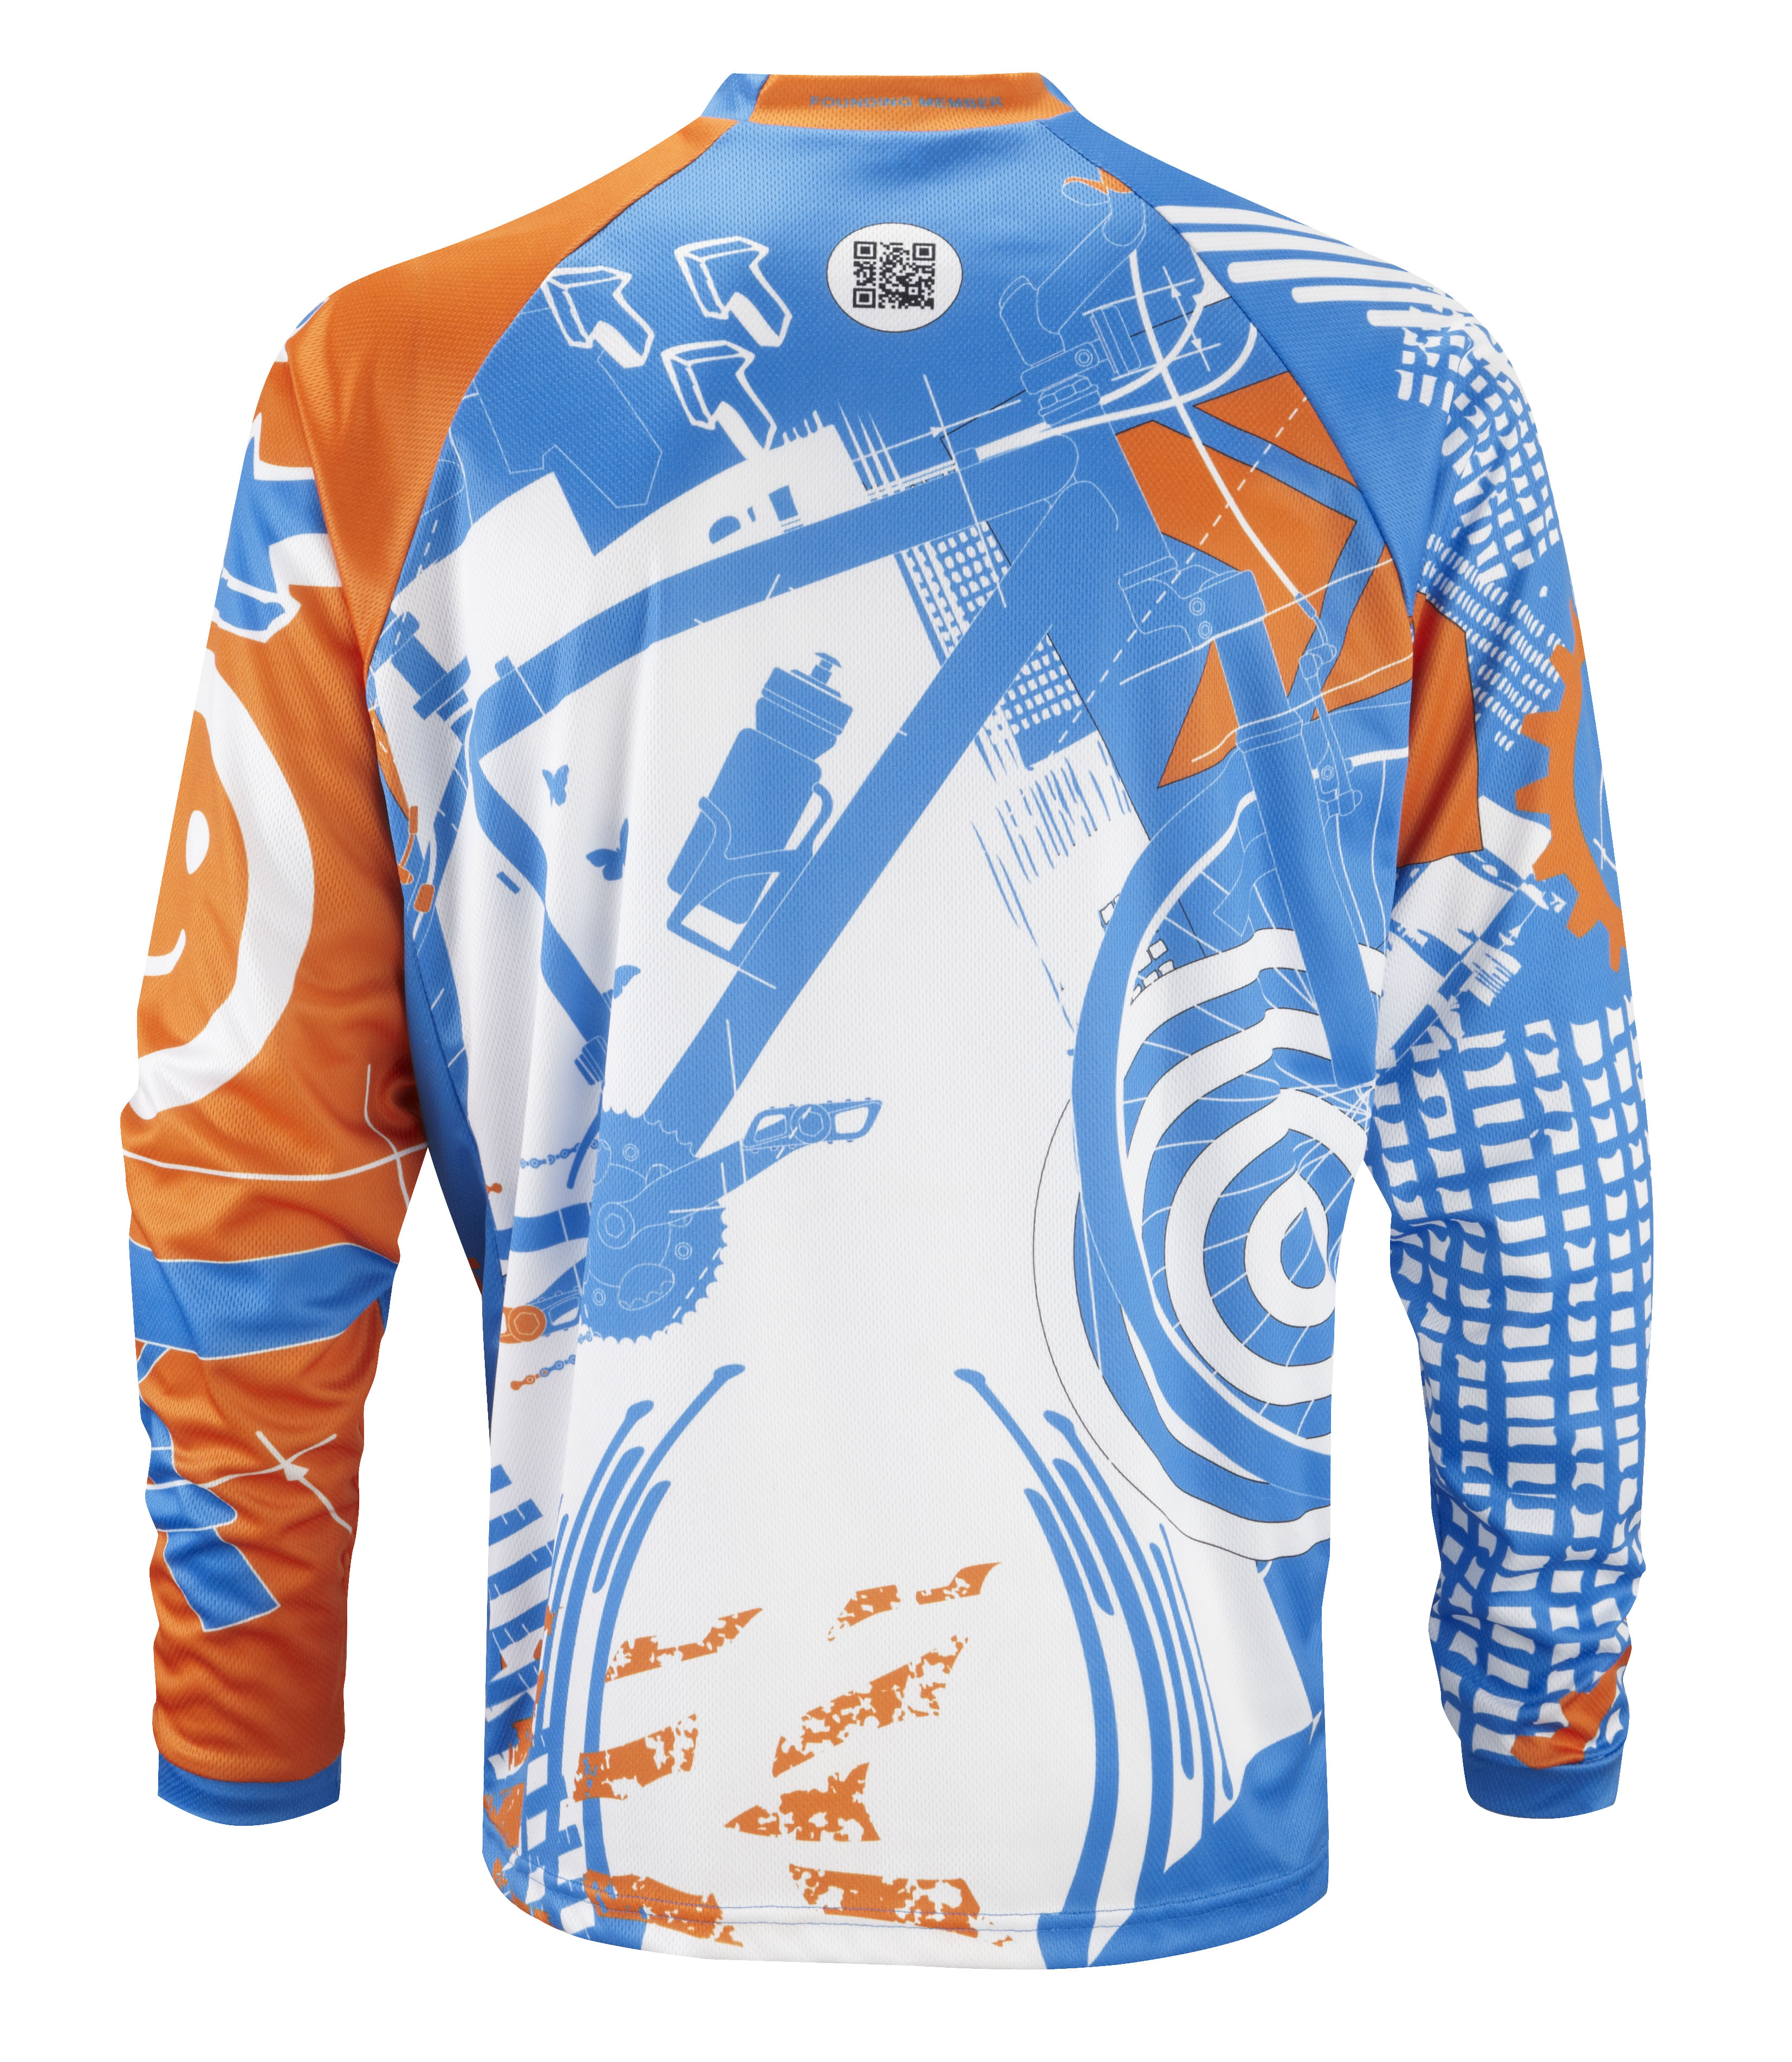 Downhill Founding Member Jersey